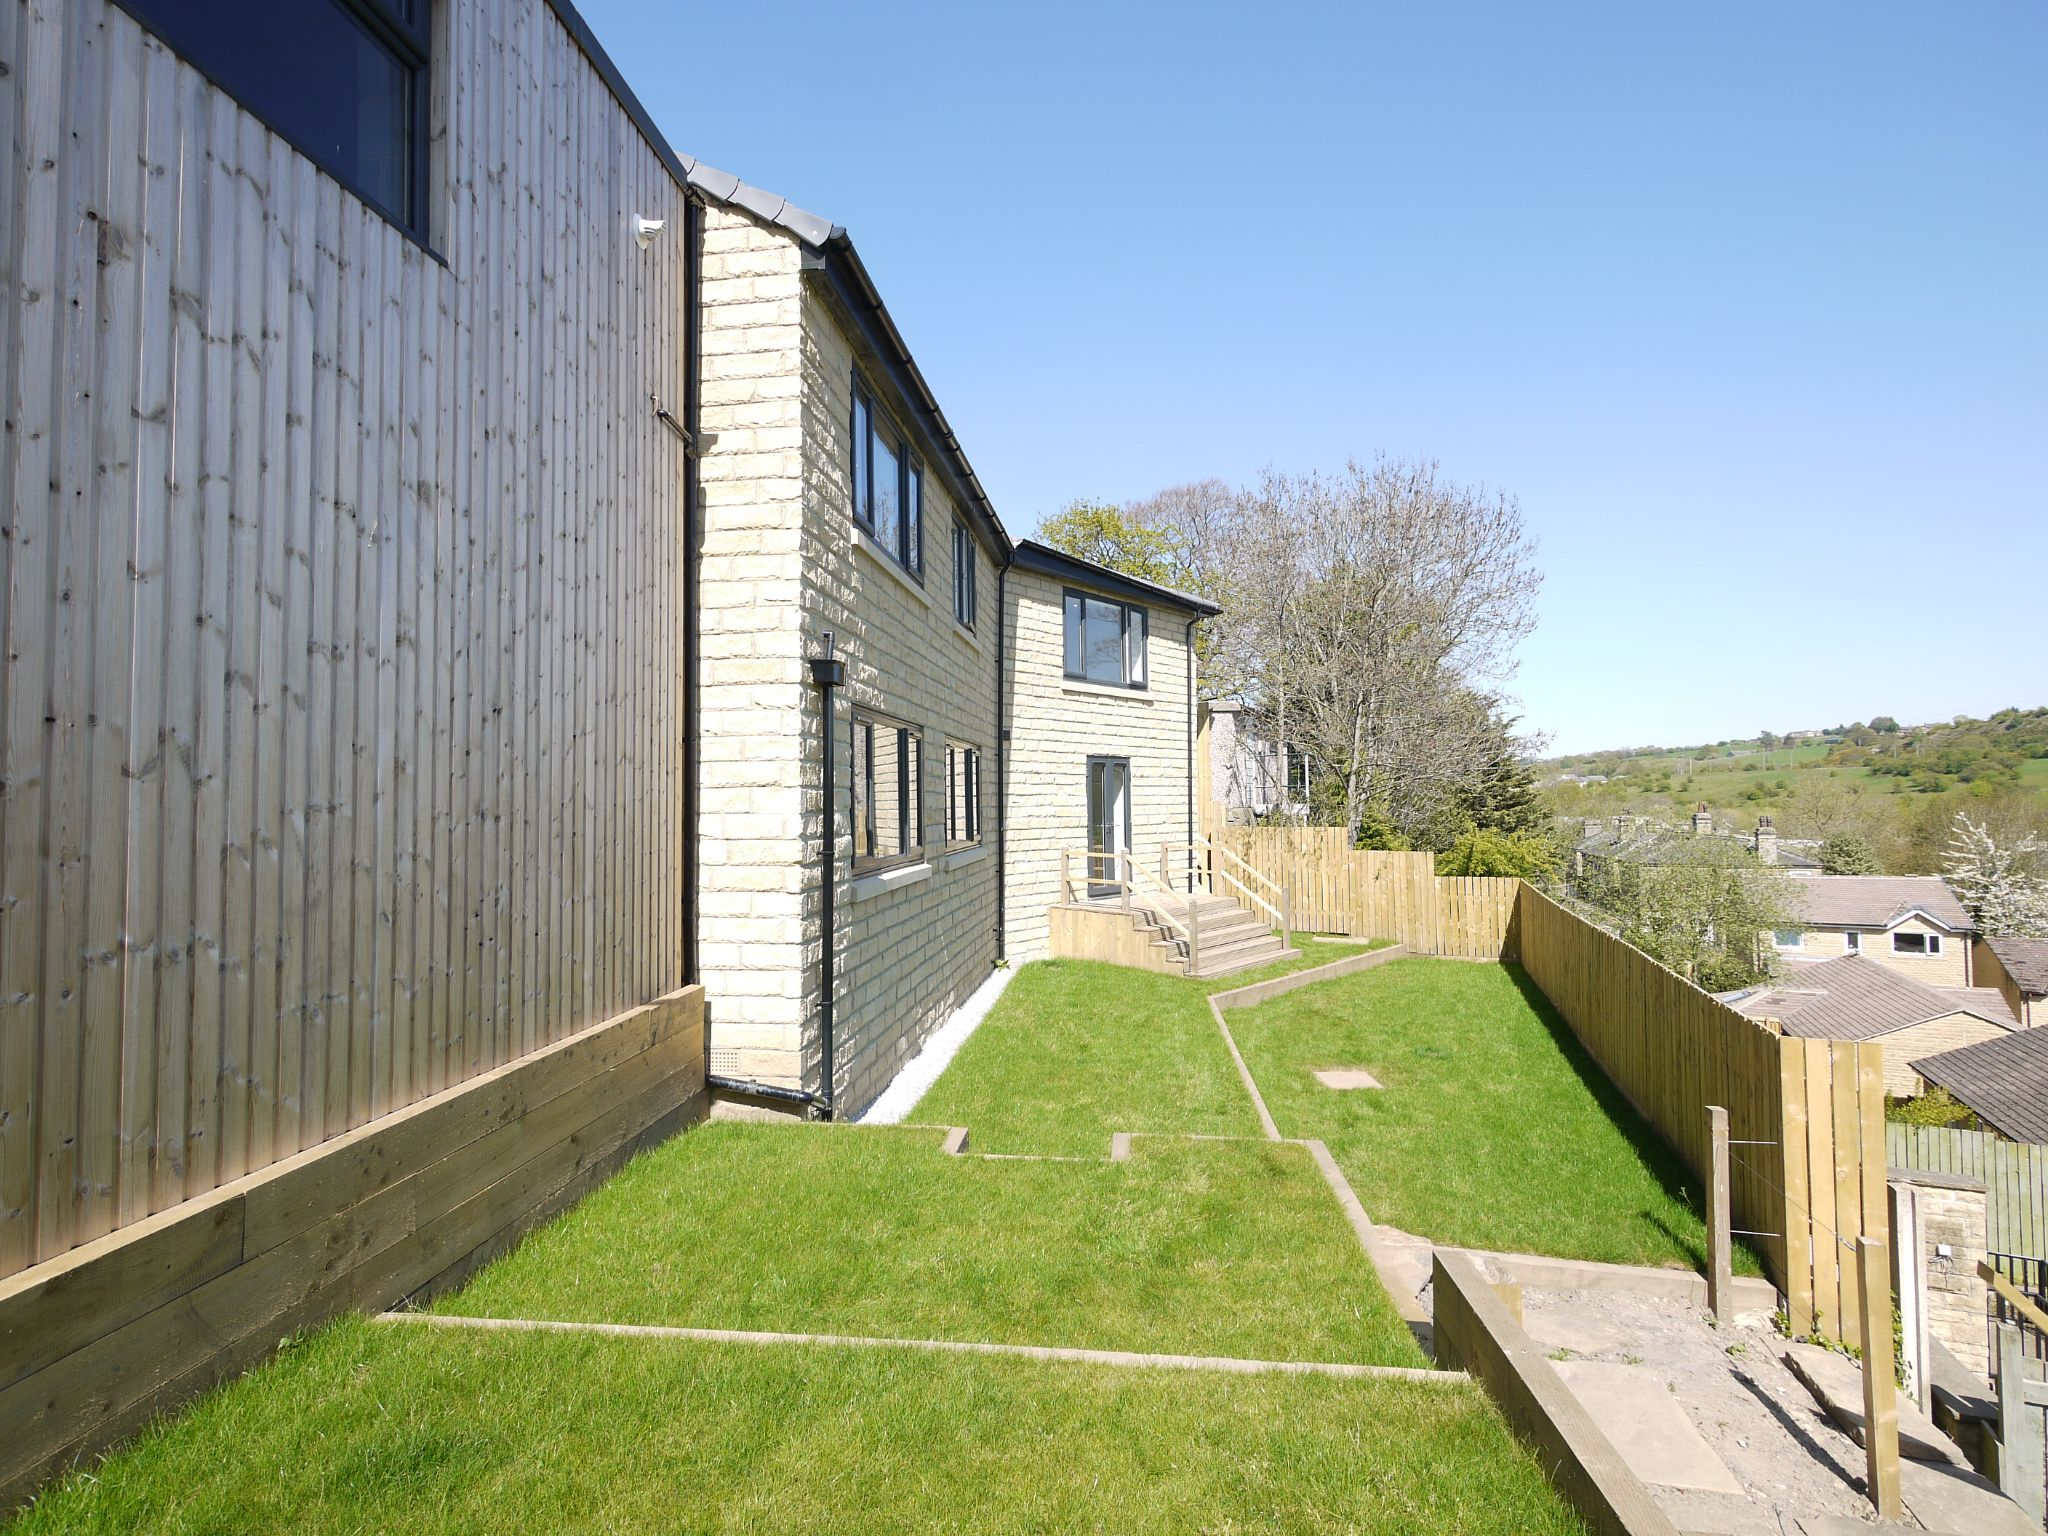 3 bedroom detached house For Sale in Brighouse - Garden 2.